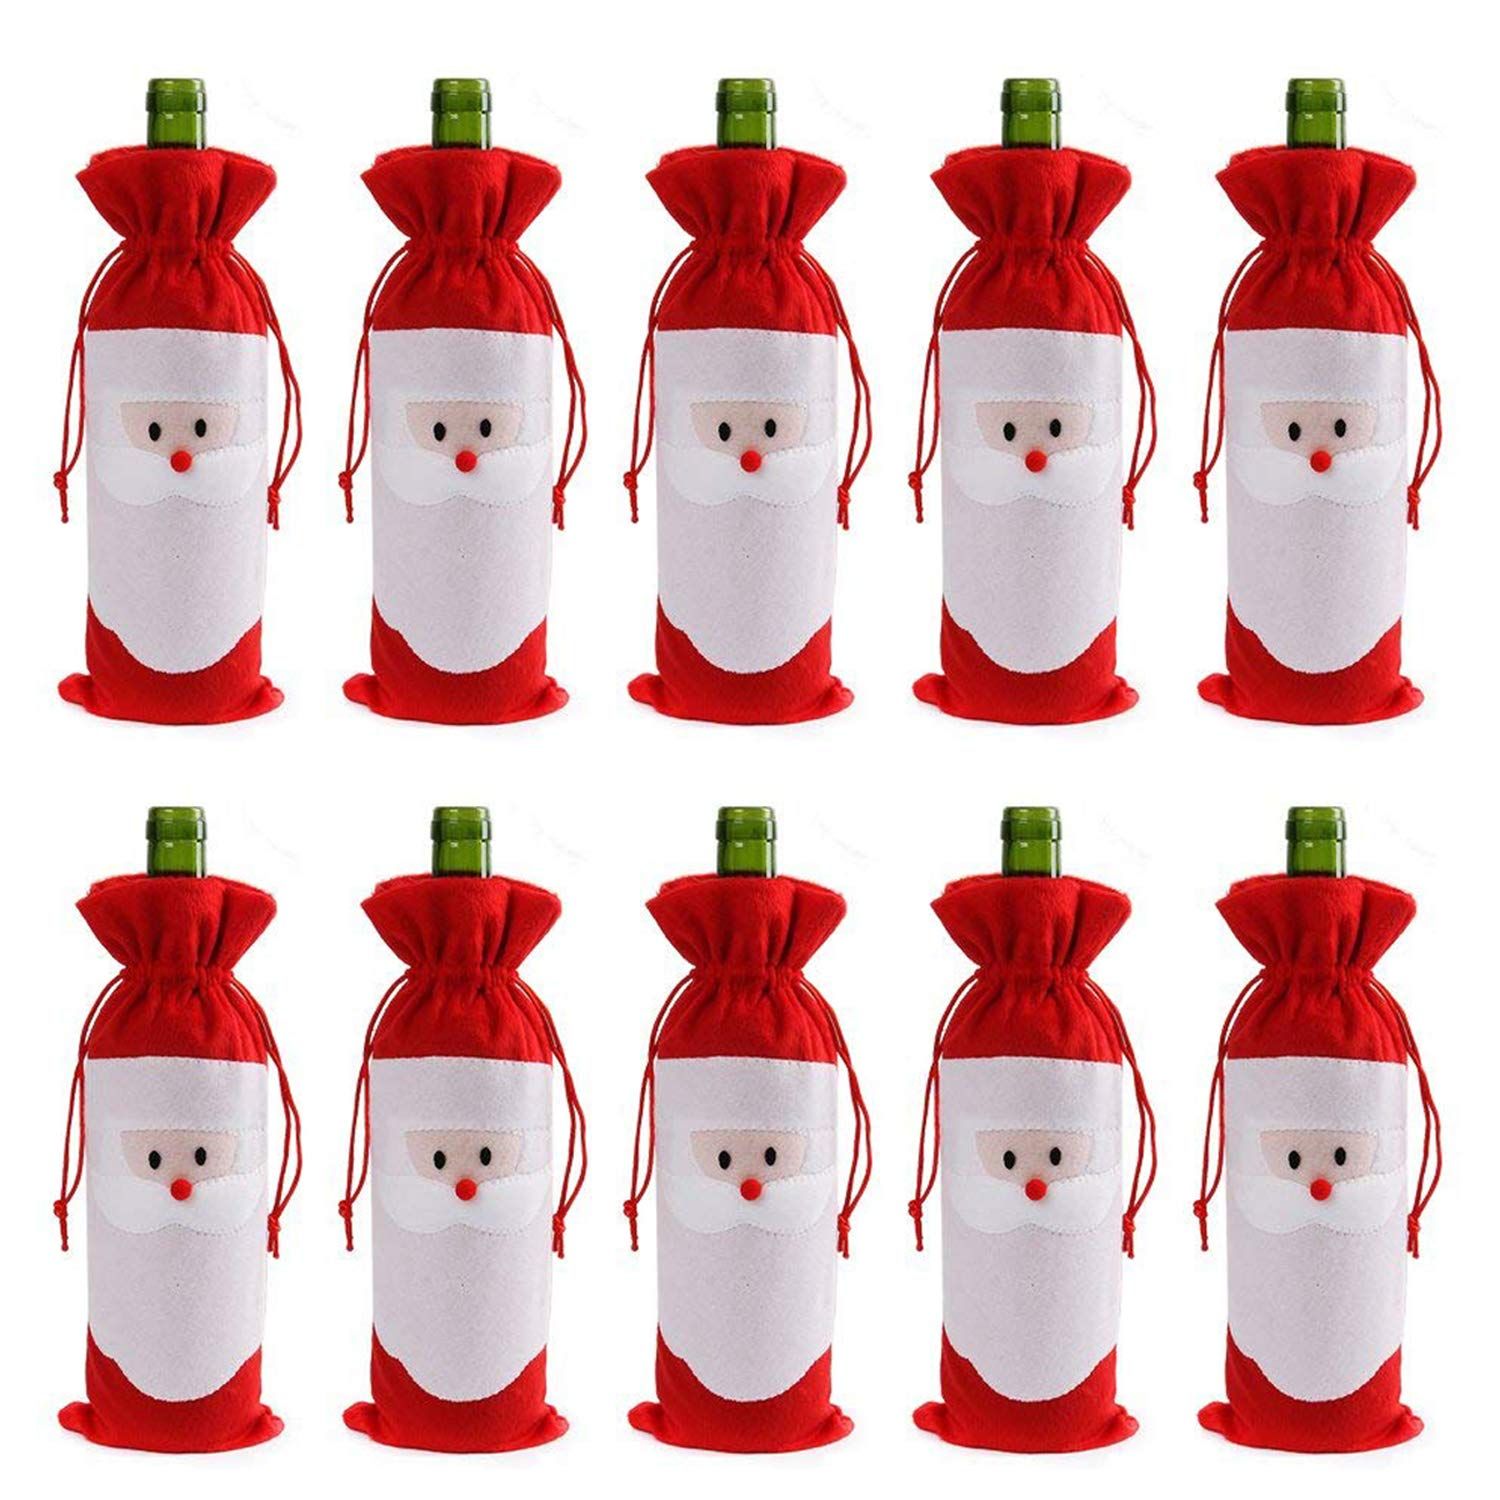 Gizhome 10 Piece Santa Claus Christmas Drawstring Red Wine Bottle Cover Bags for Home Dinner Party Decoration Table Decor X-Mas Gift